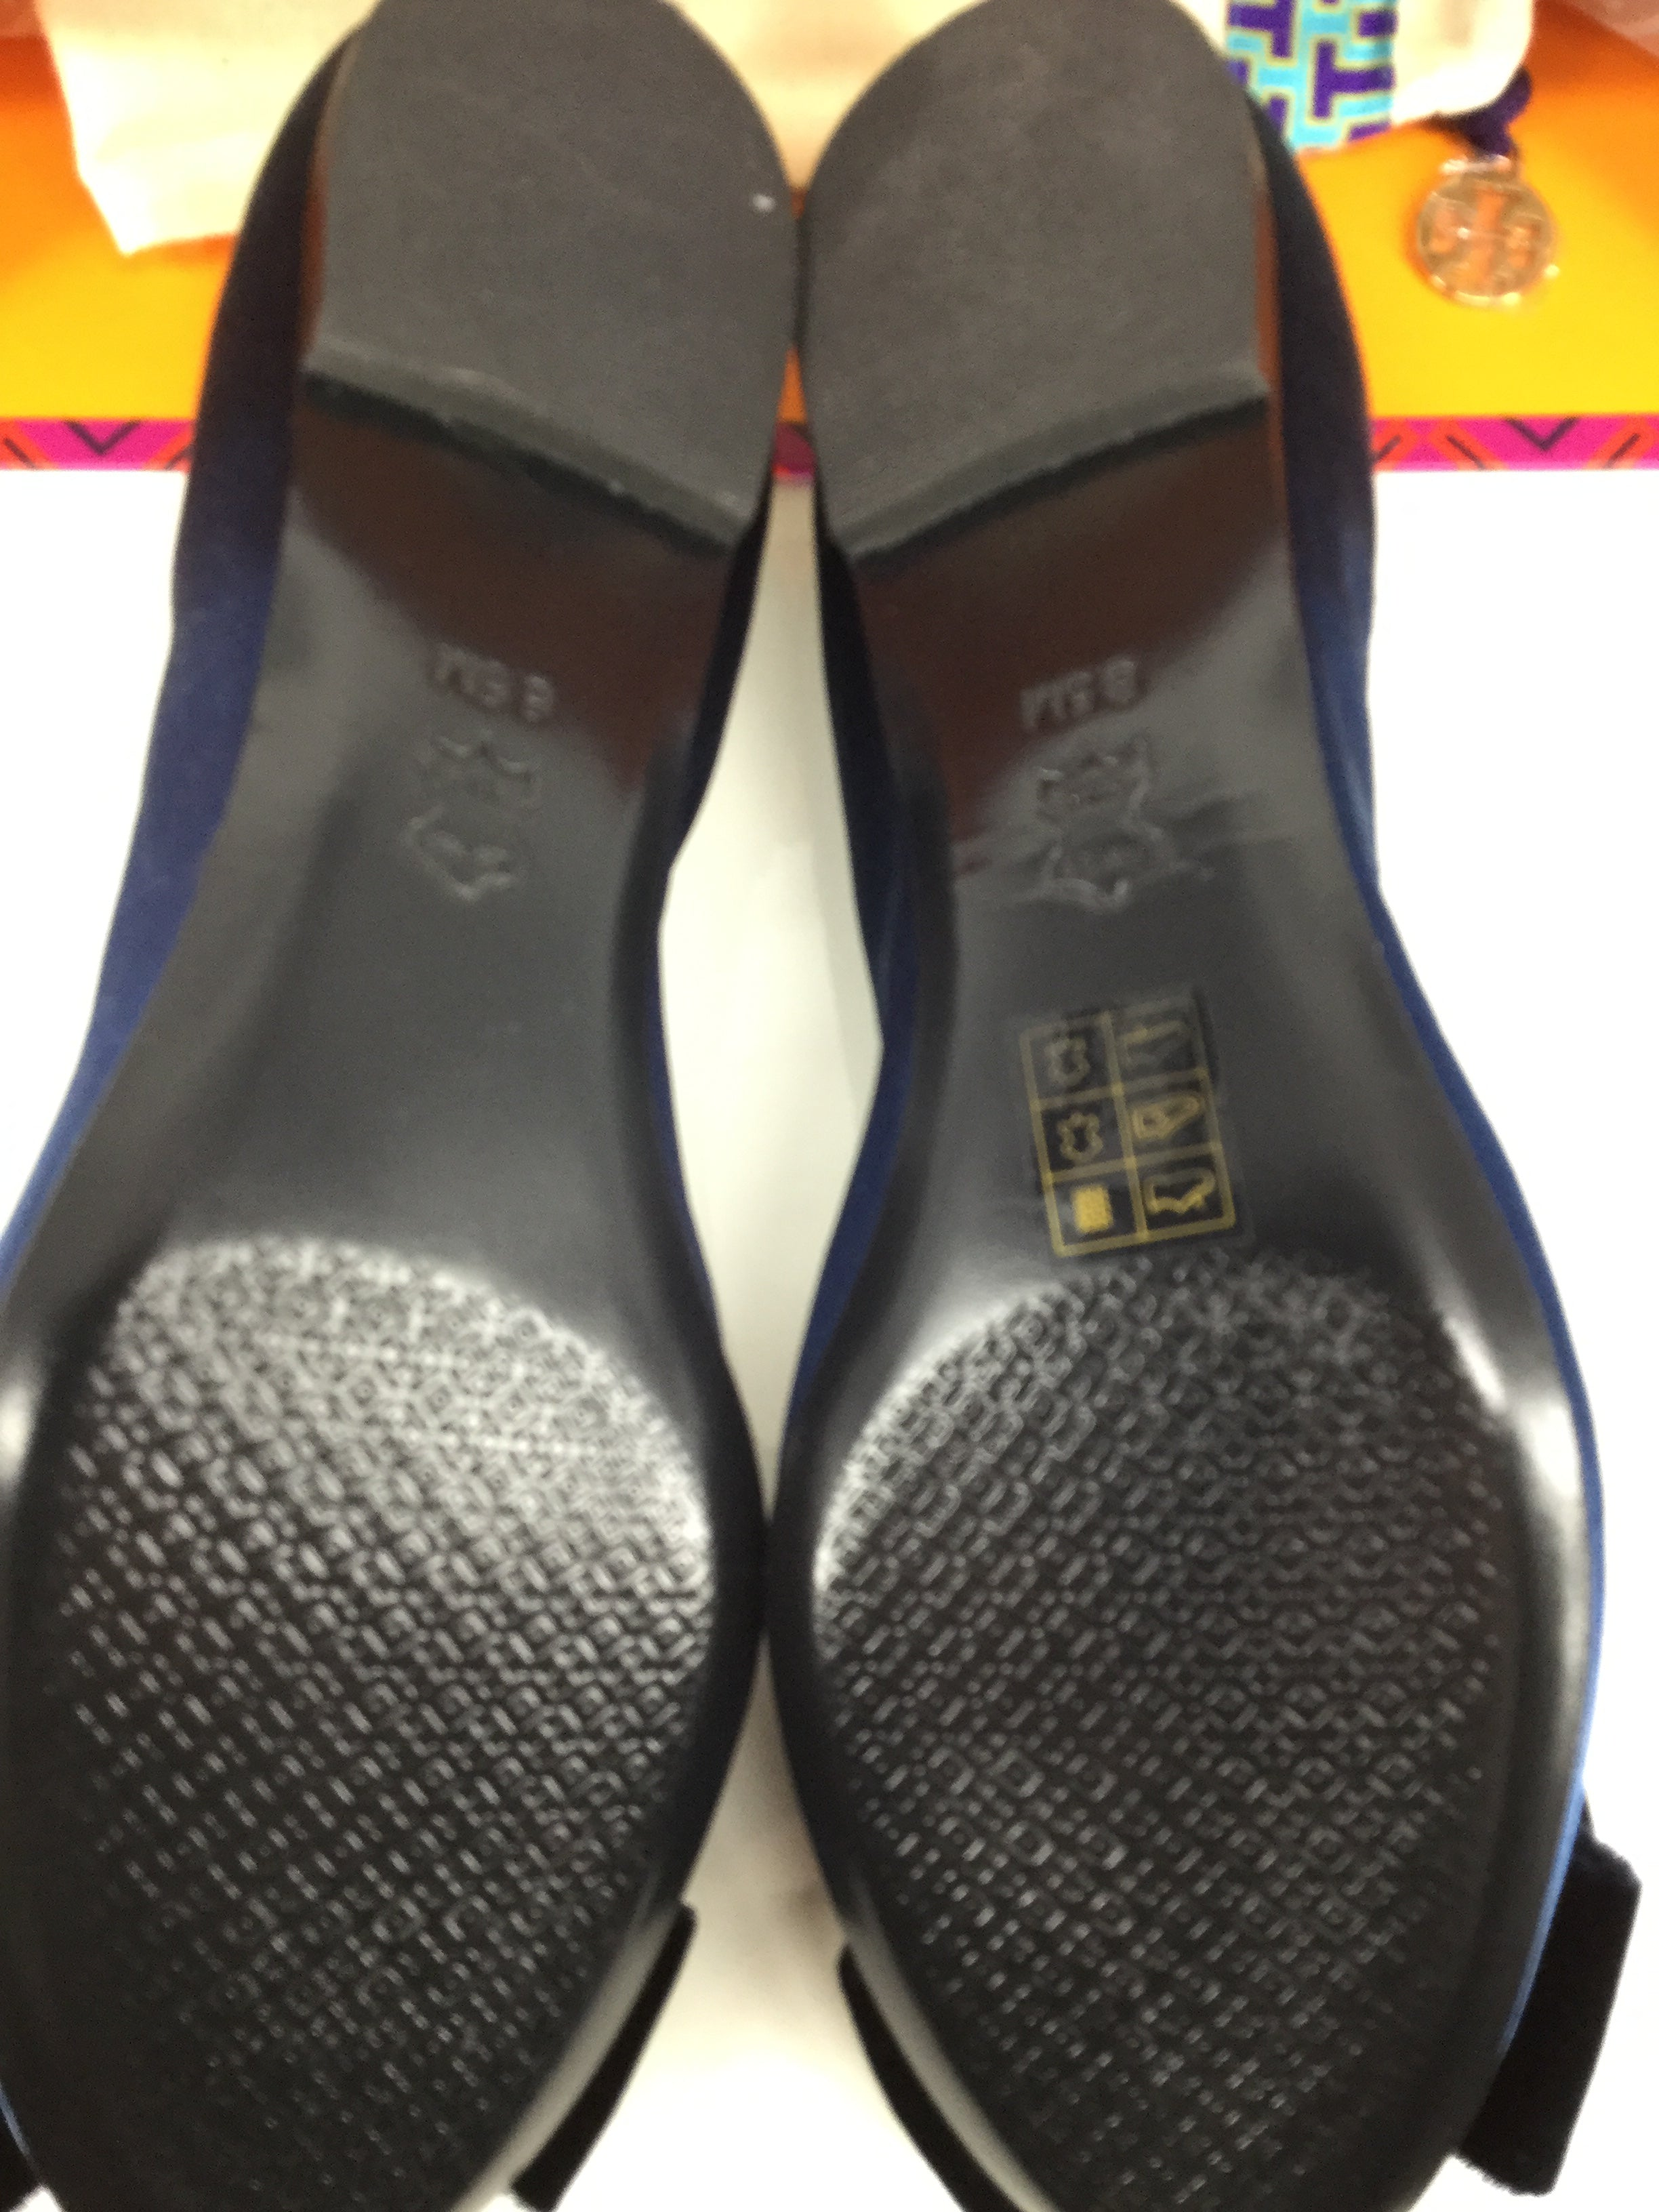 SHOES, - TORY BURCH VIOLA BOW BALLET FLAT